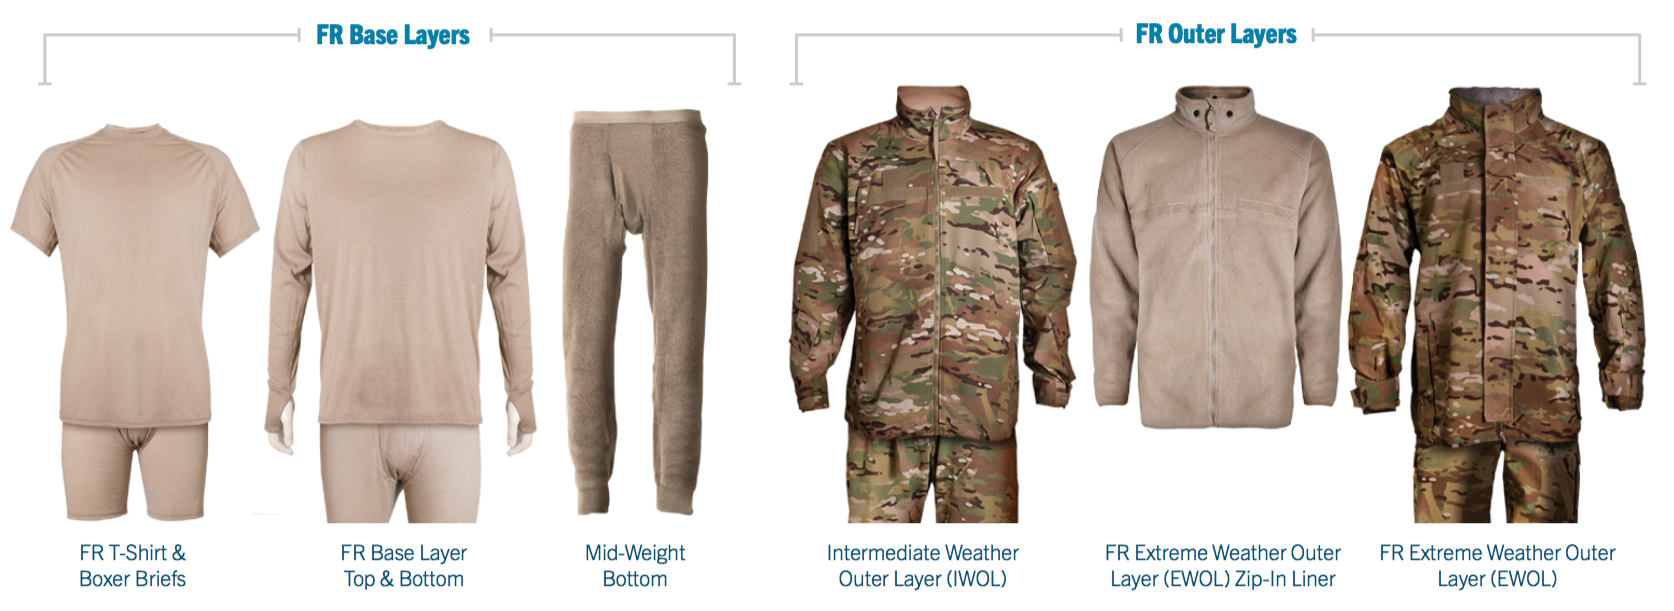 military base layers and outer layers